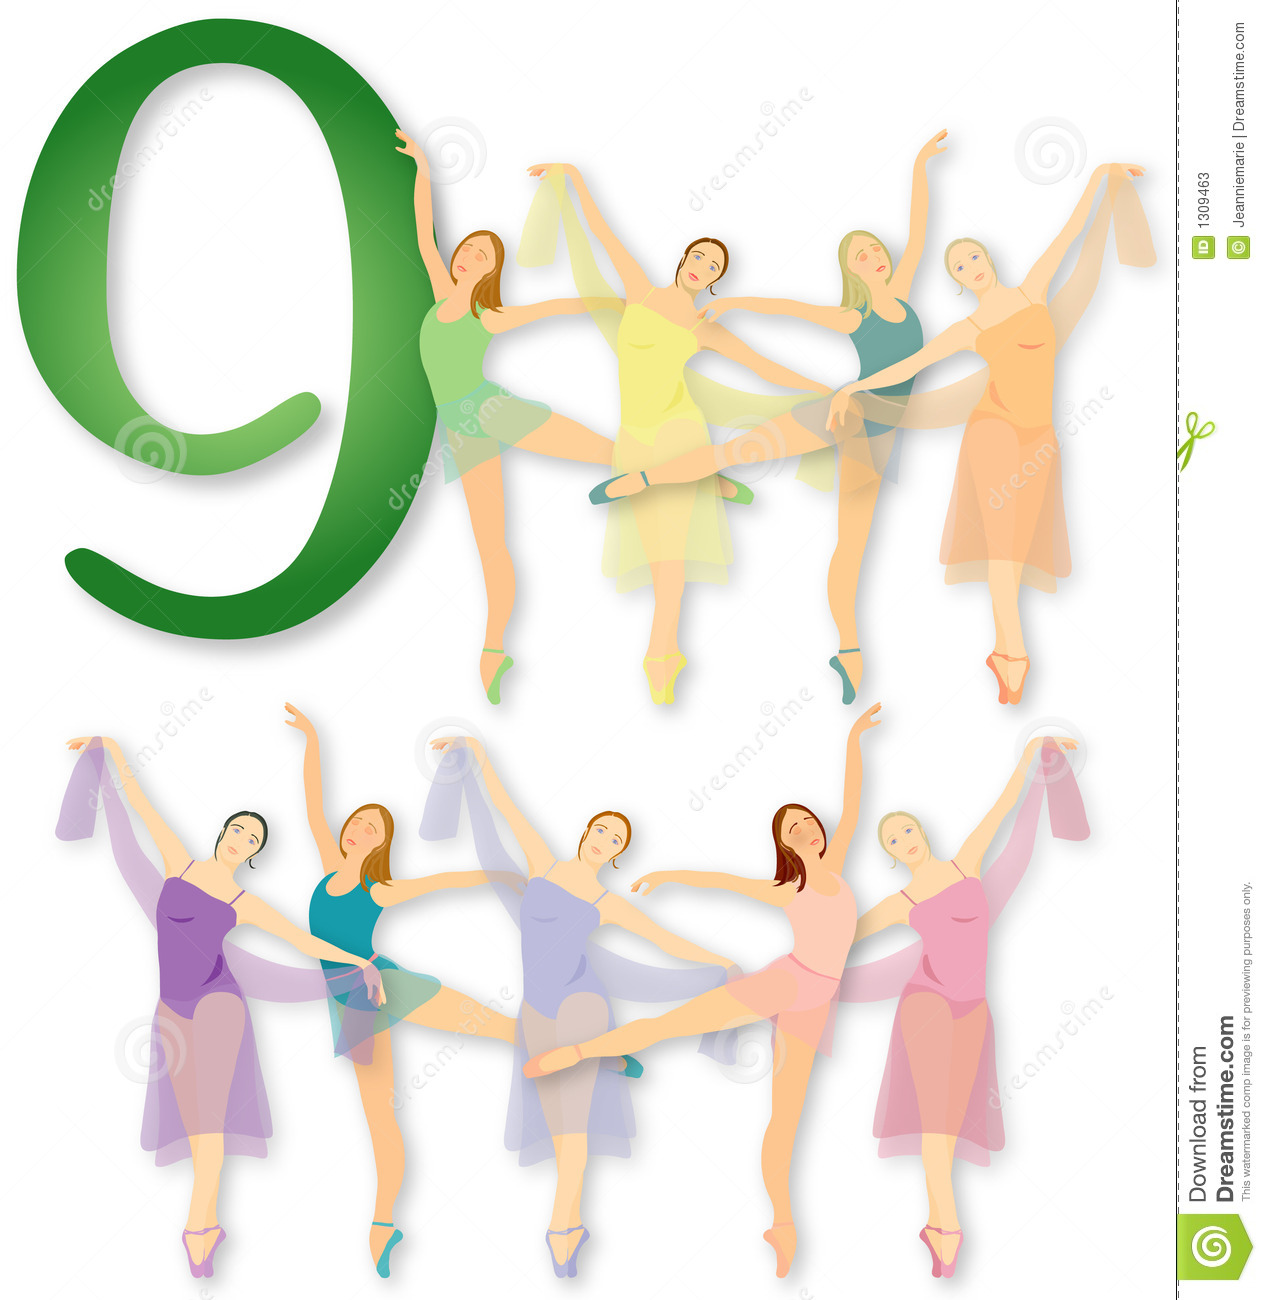 12 Days Of Christmas: 9 Ladies Dancing Stock Photos - Image: 1309463